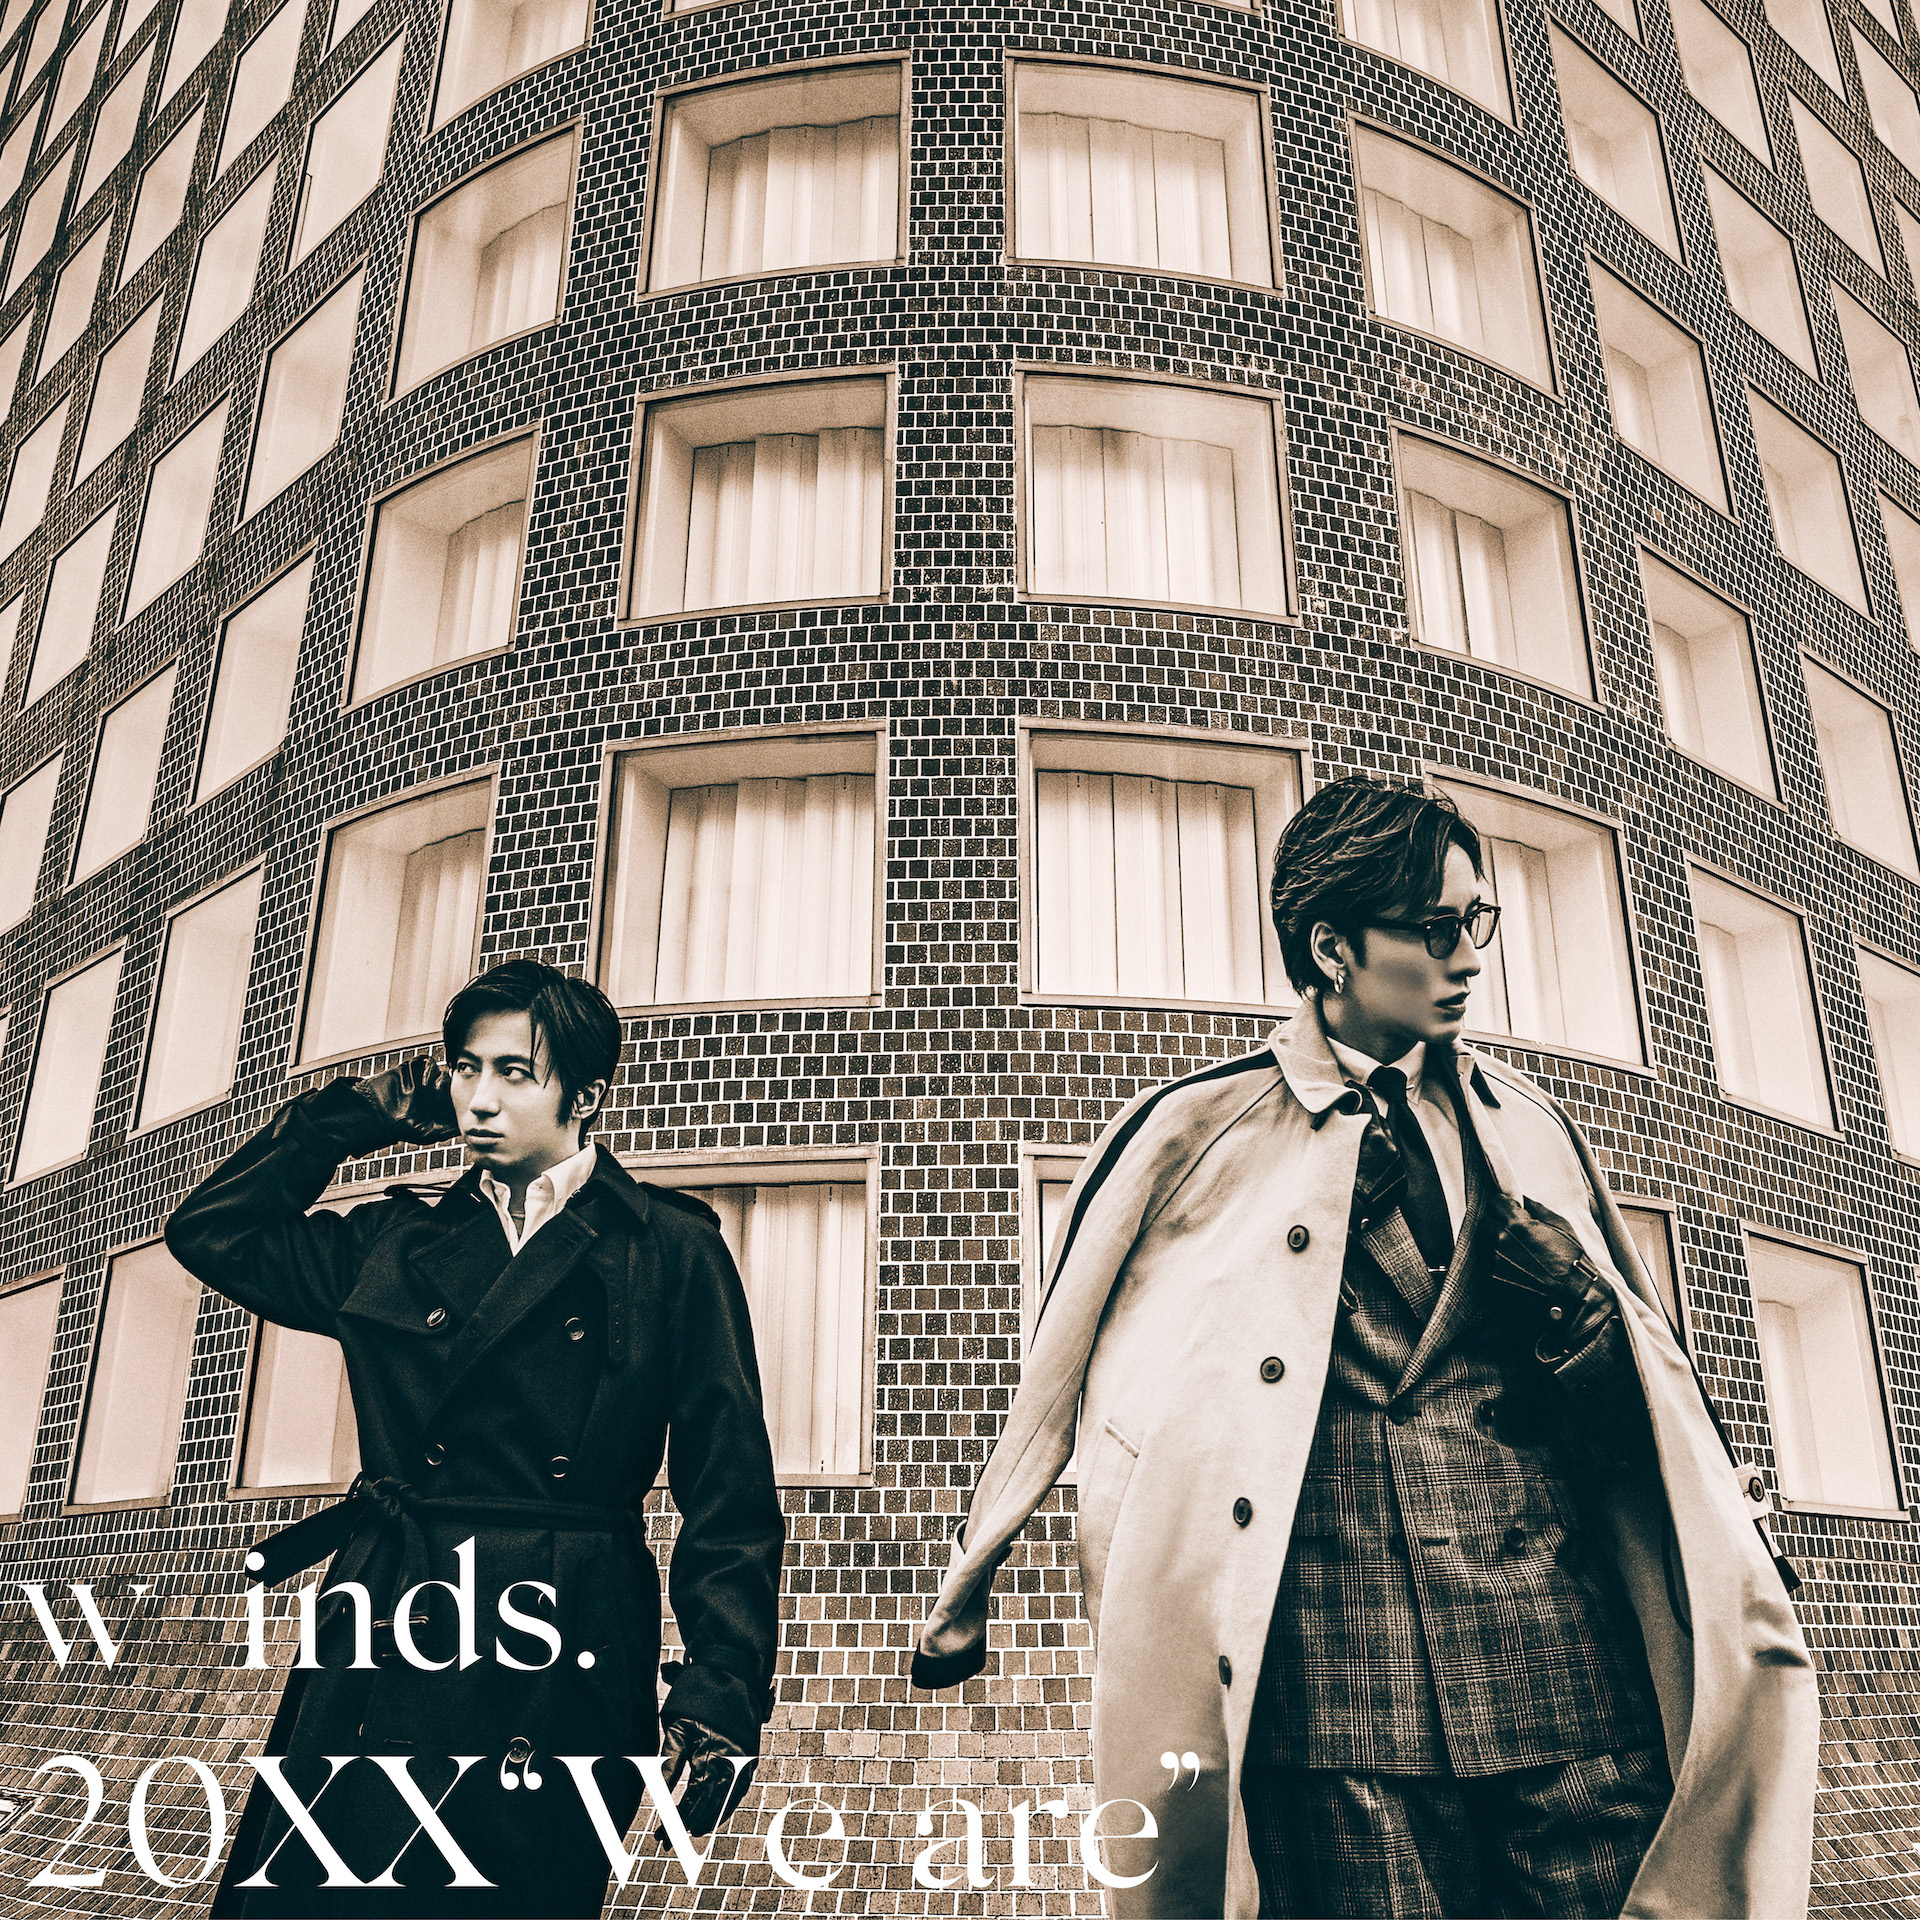 """w-inds. Album 20XX""""We are"""" Normal Edition(CD only)Release in November 24th 2021"""